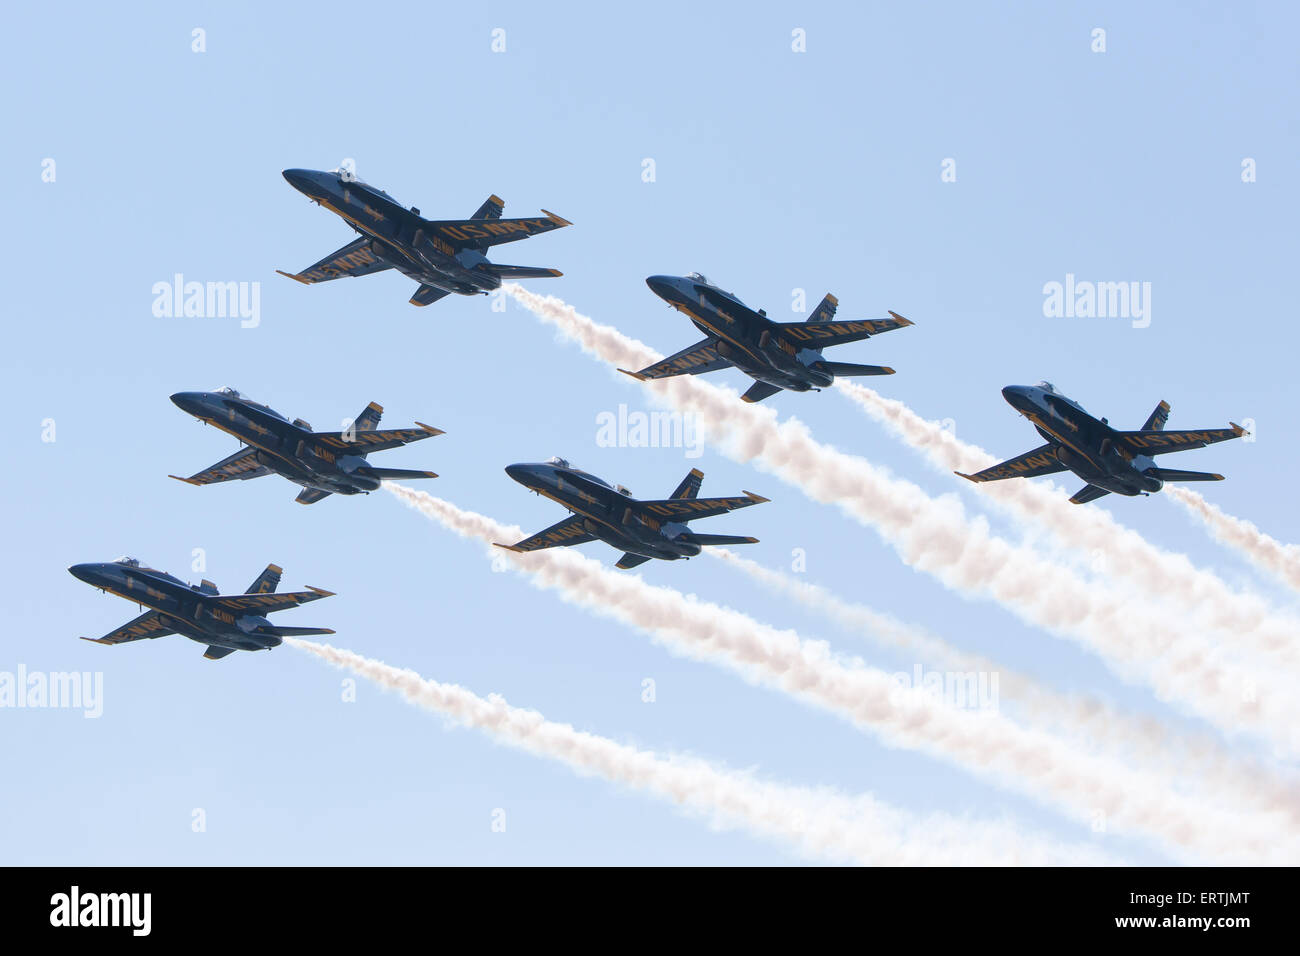 The Blue Angels flight demonstration squadron flyover prior to the 2015 US Naval Academy Graduation and Commissioning - Stock Image